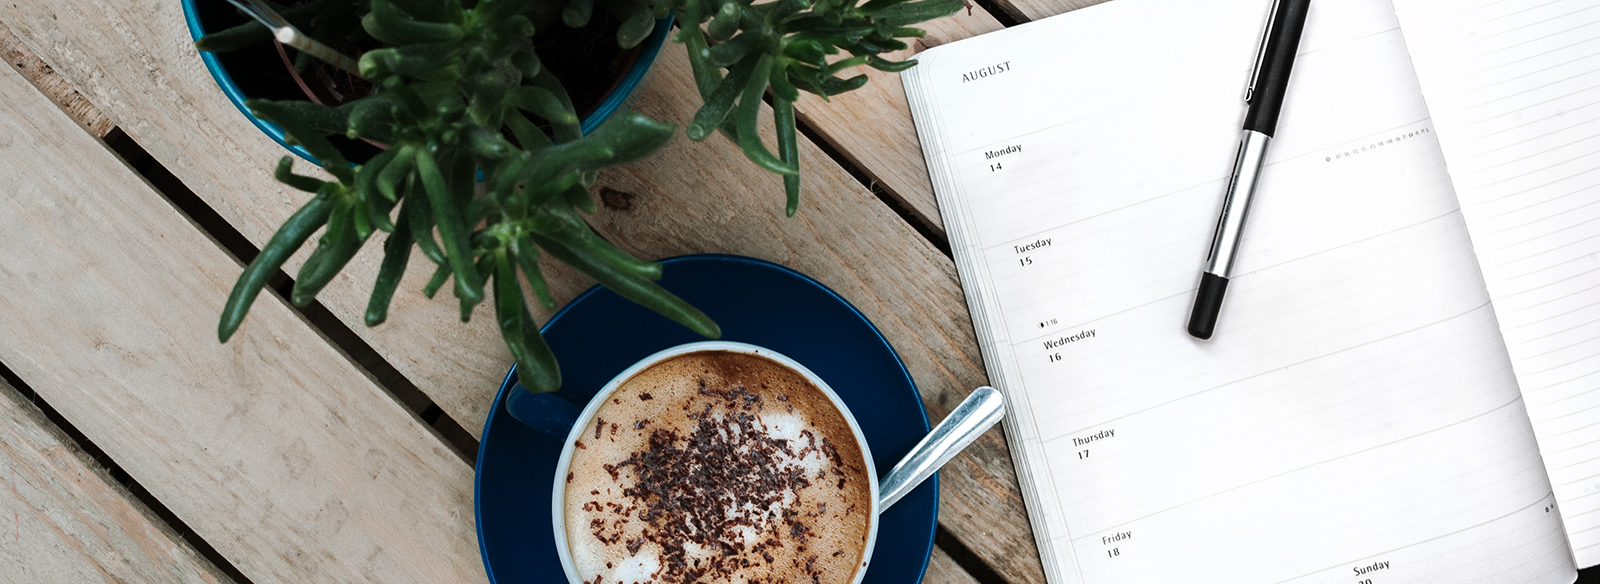 a planner, a pen, a coffee and a pant on top of a table